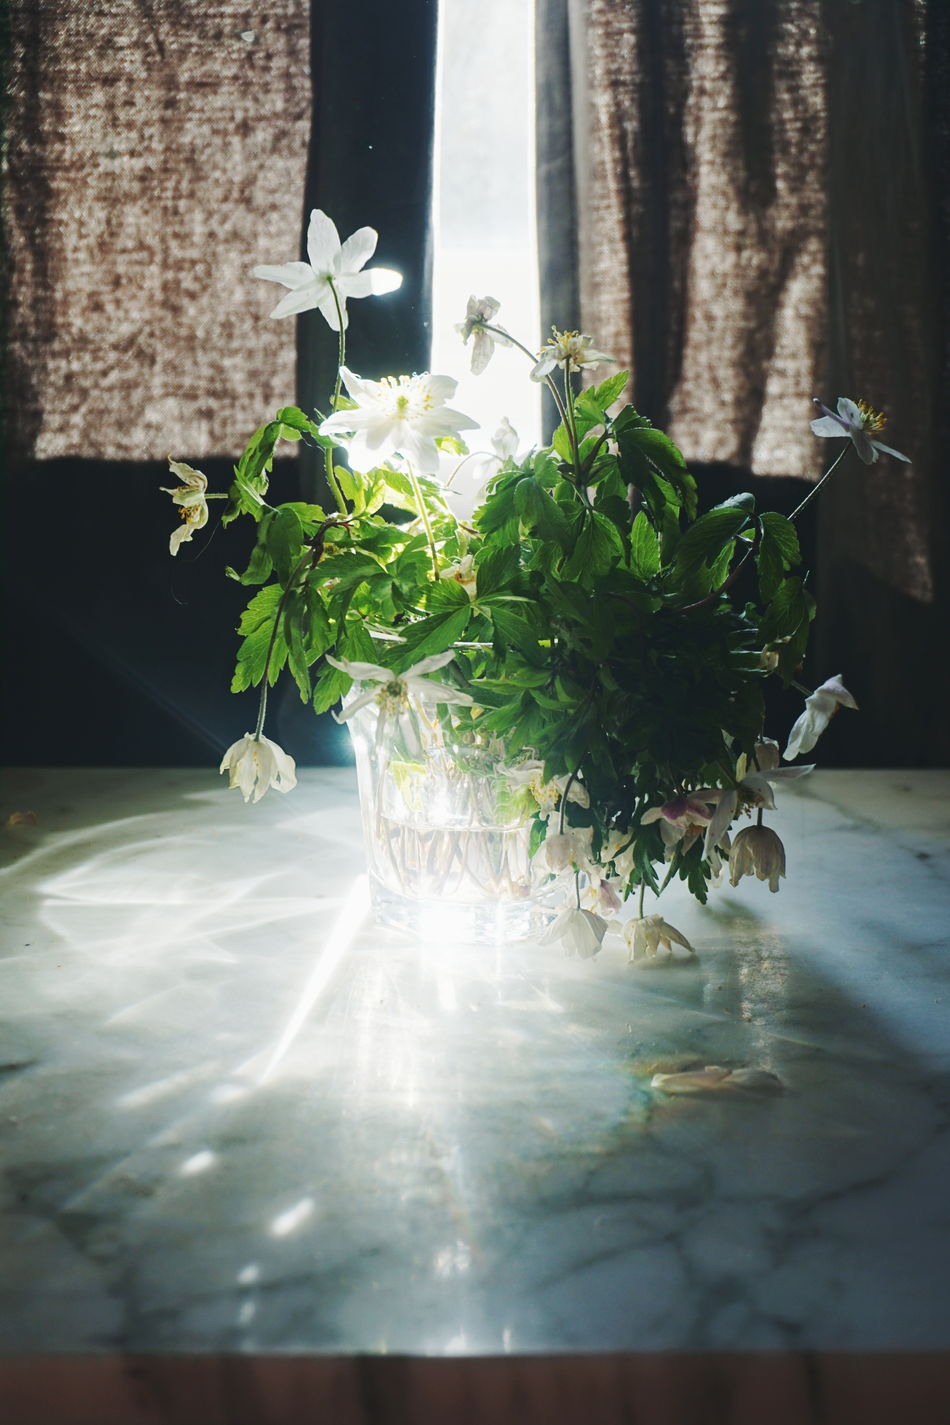 Morning light Close-up Day Flower Freshness Growth Indoors  Leaf Light Morning Morning Light Nature No People Plant Shadows & Lights Spring Flowers Sunbeam Sunlight Sunlight And Shadow Window Wood Anemone